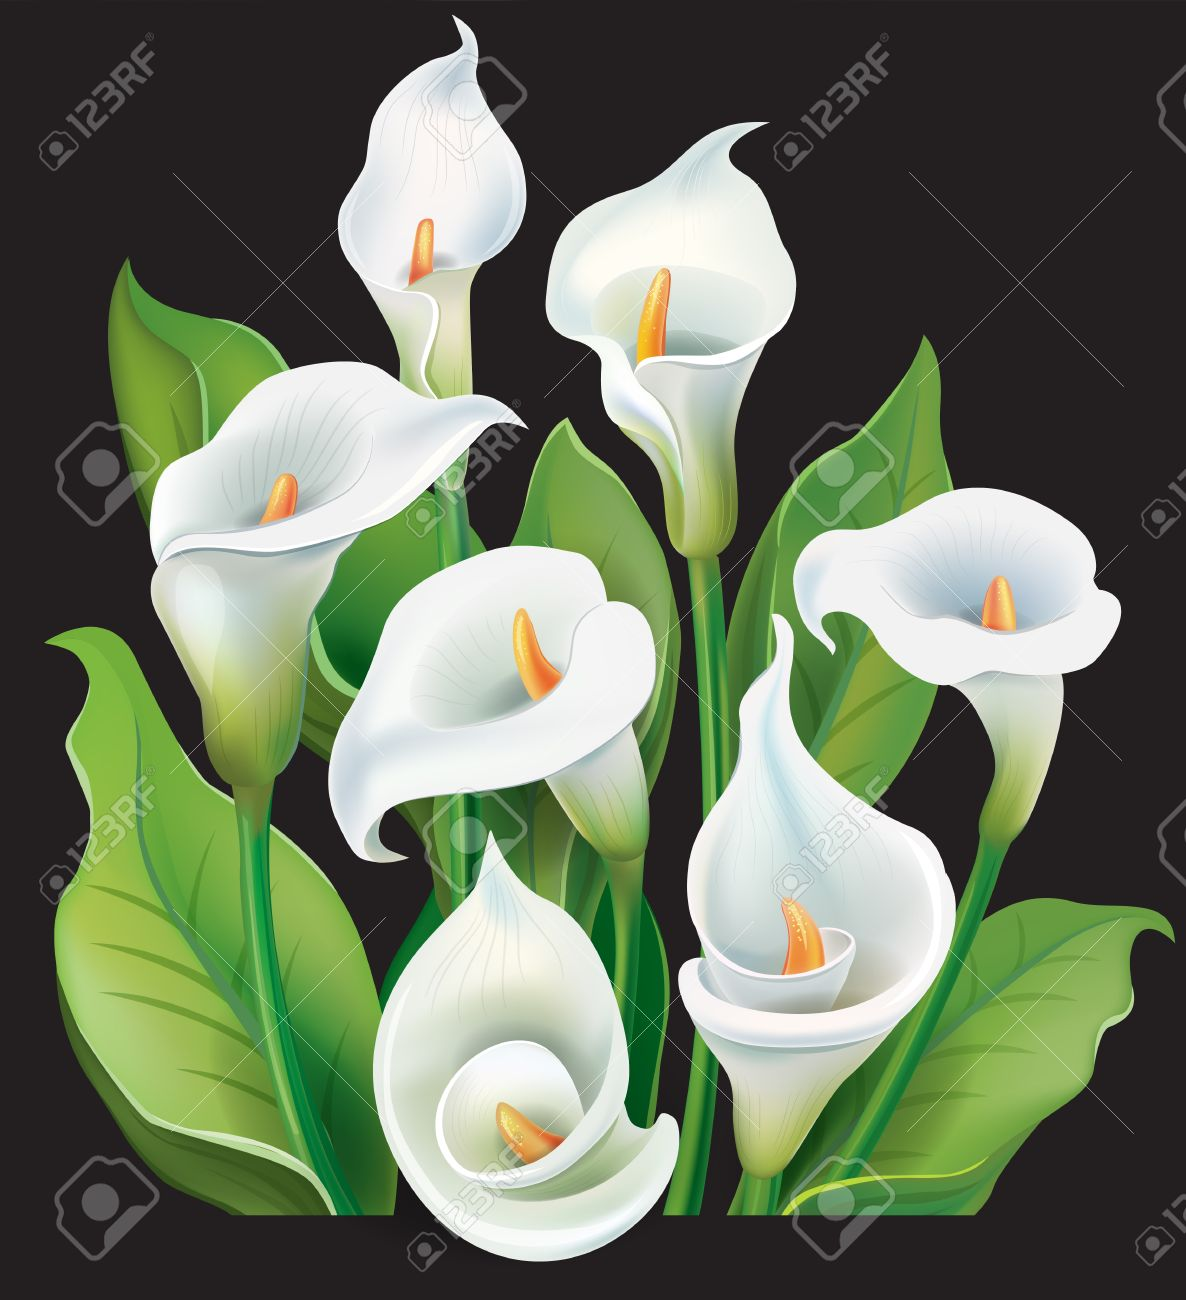 Bouquet Of White Calla Lilies On Black Background Royalty Free